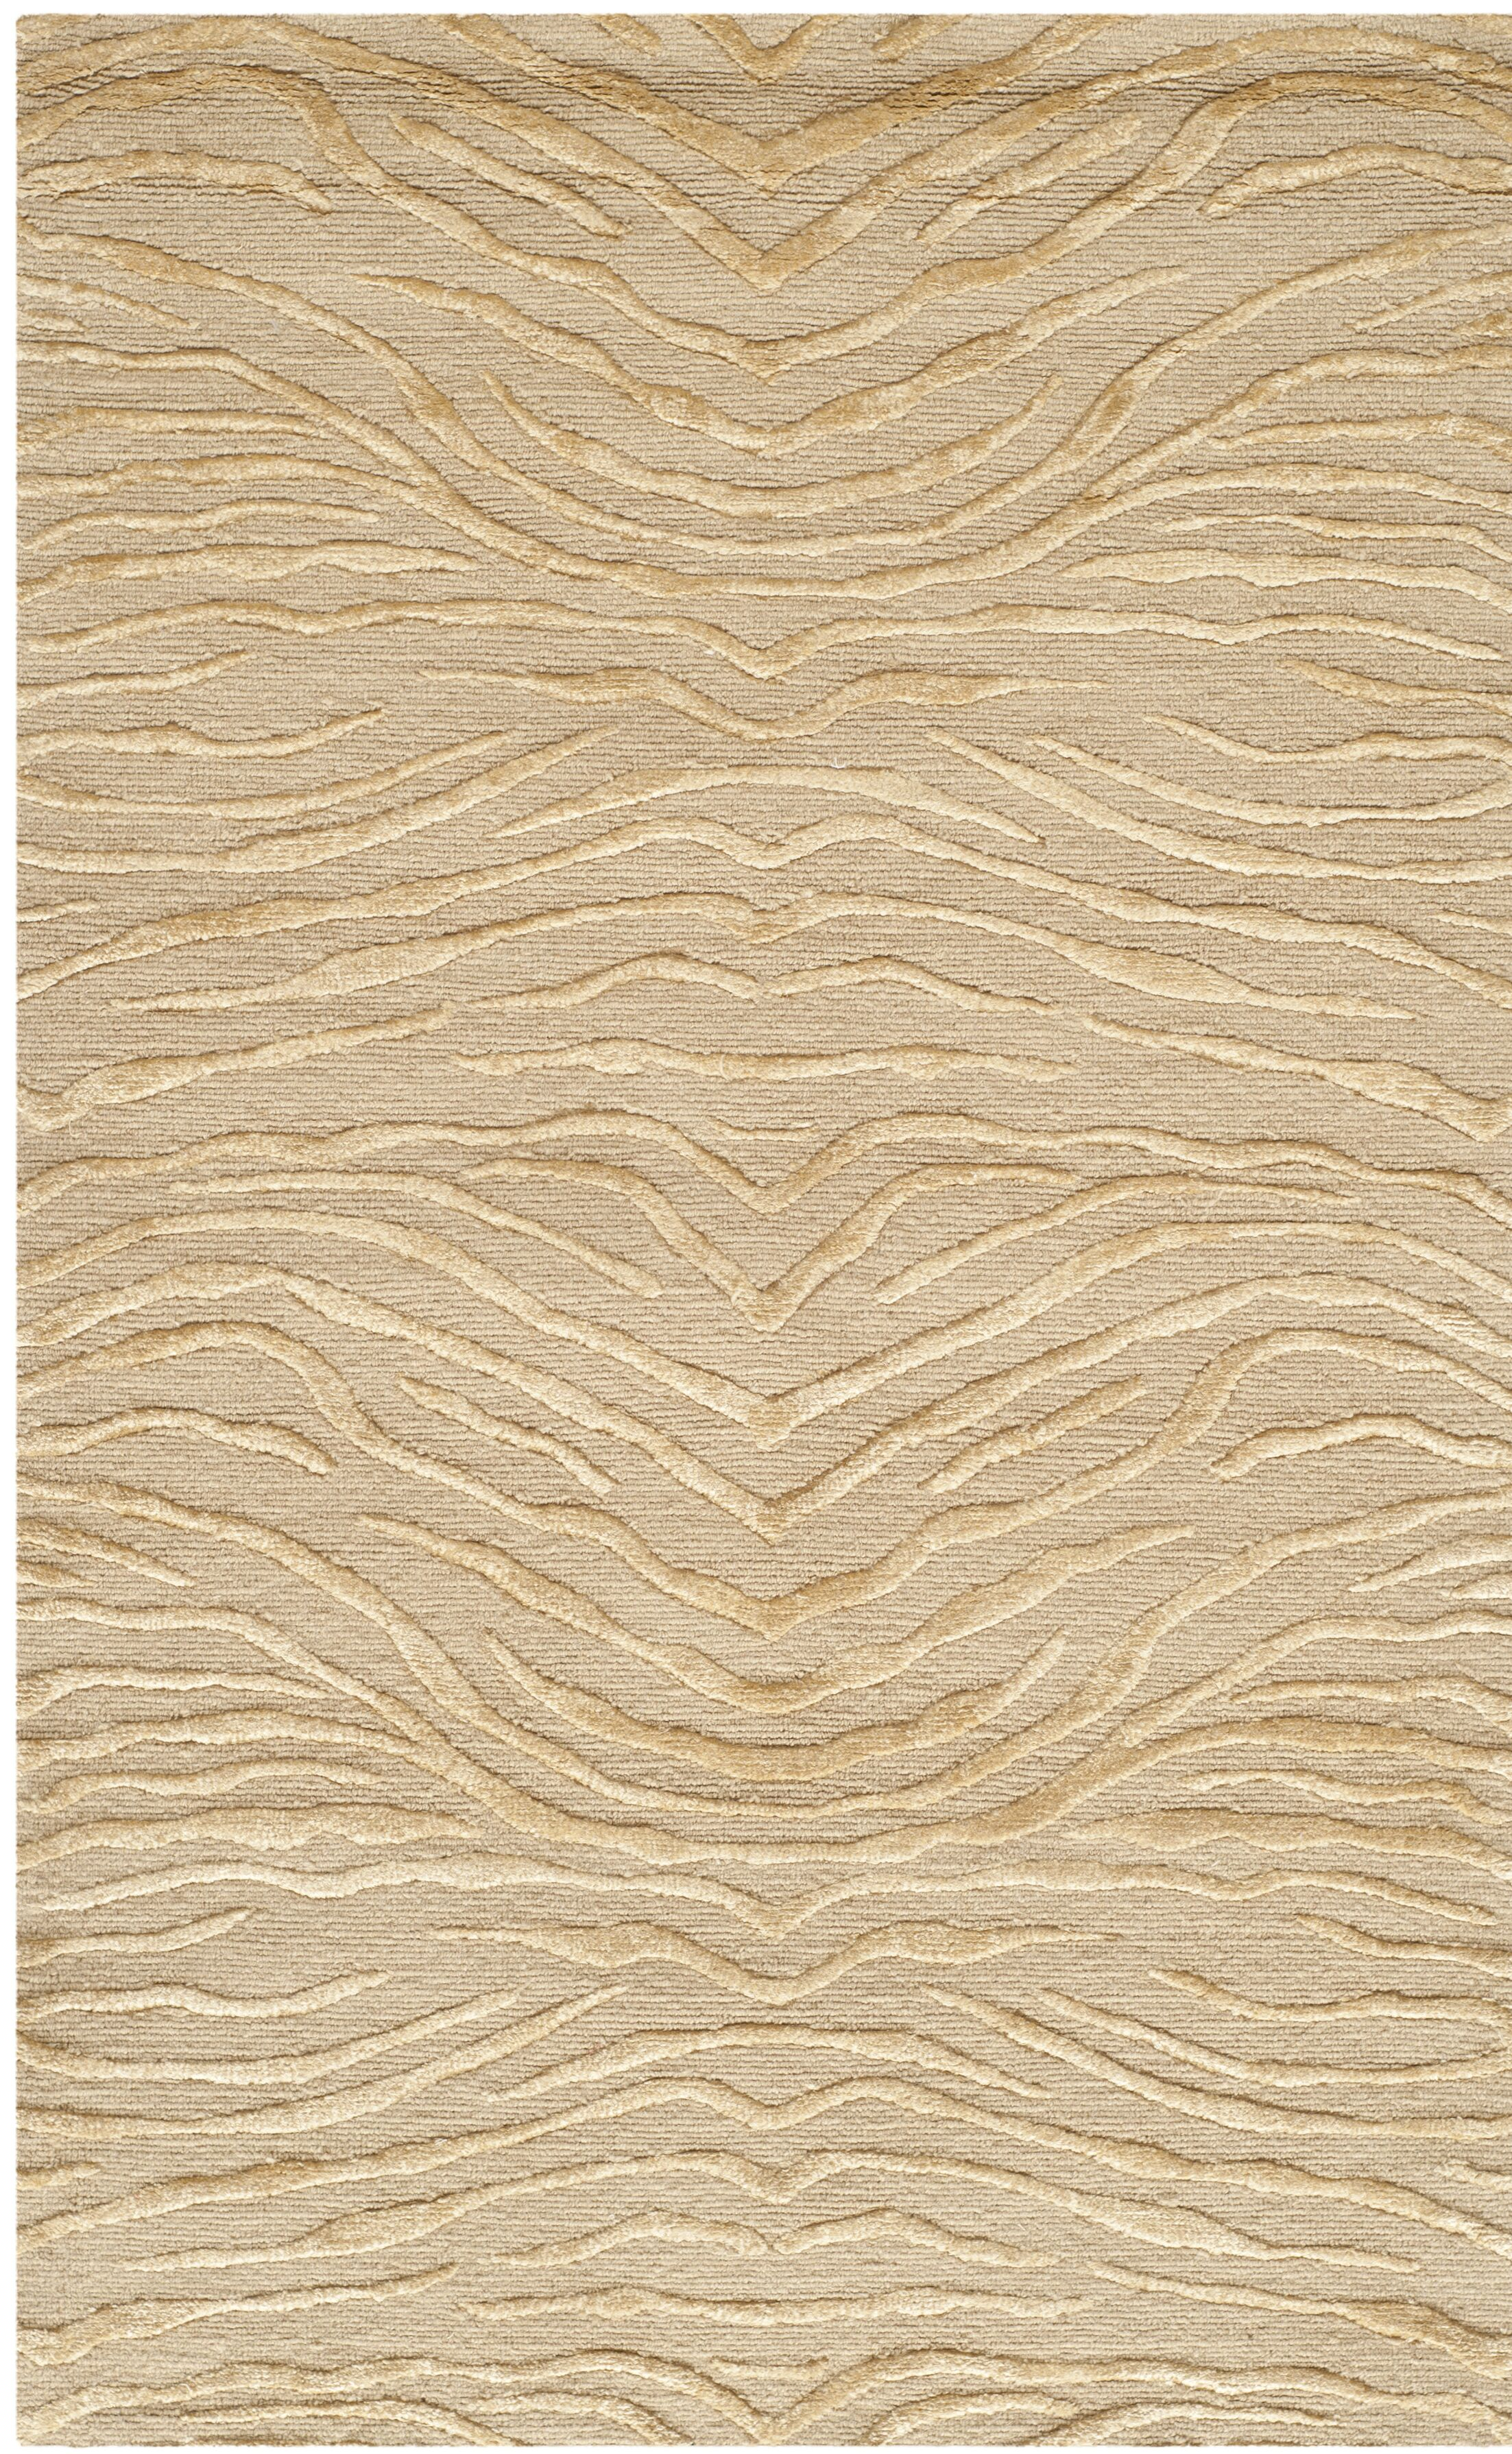 Hand-Tufted Sand Area Rug Rug Size: Rectangle 2'6